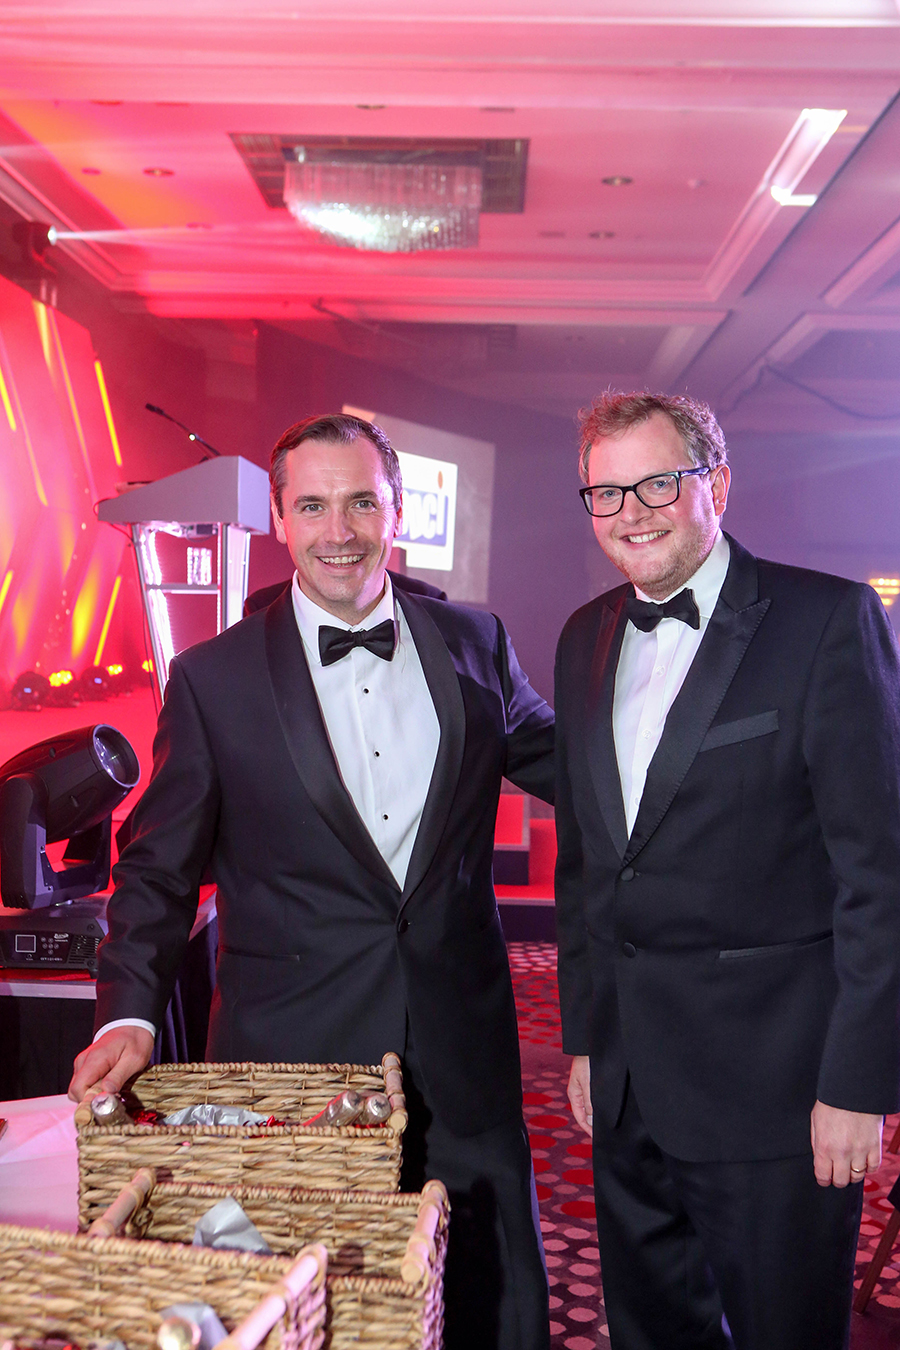 James Shepperton of Shepperton Butchers (who collected a raffle prize on behalf of The Yorkshire Wagyu Company's Jonathan Shepherd) with Miles Jupp.